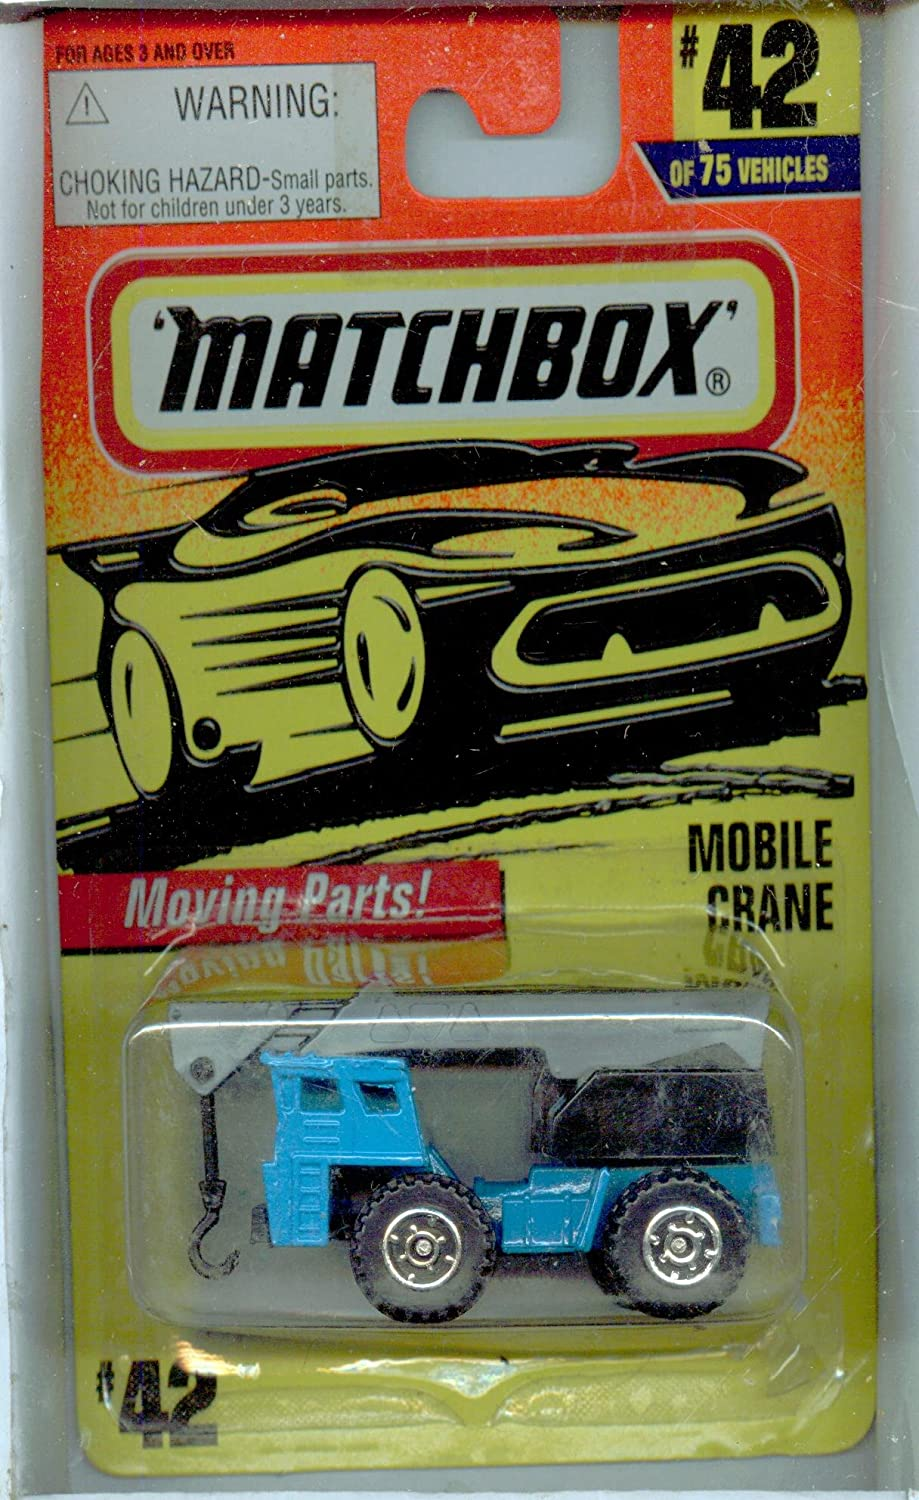 Matchbox 199742 75 blueeE Mobile Crane 1 64 Scale by Matchbox